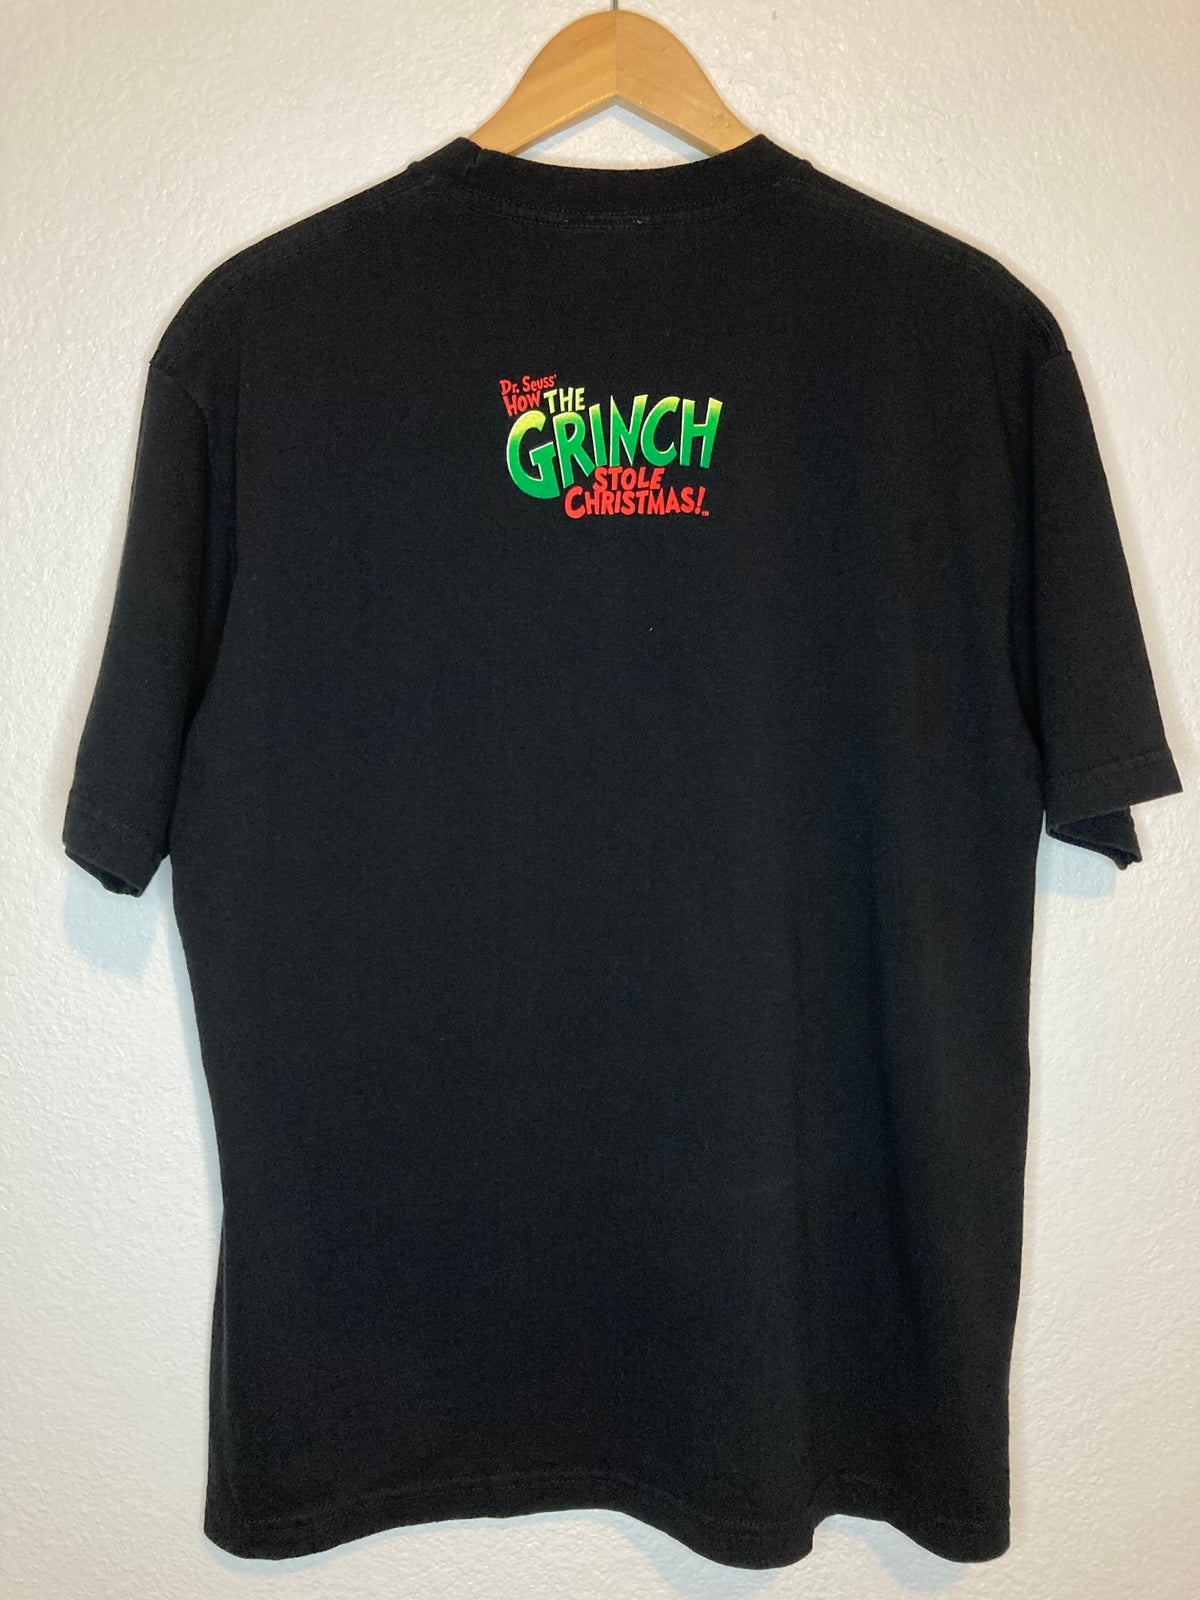 2000 Dr.Sues How The Grinch Stole Christmas Tee